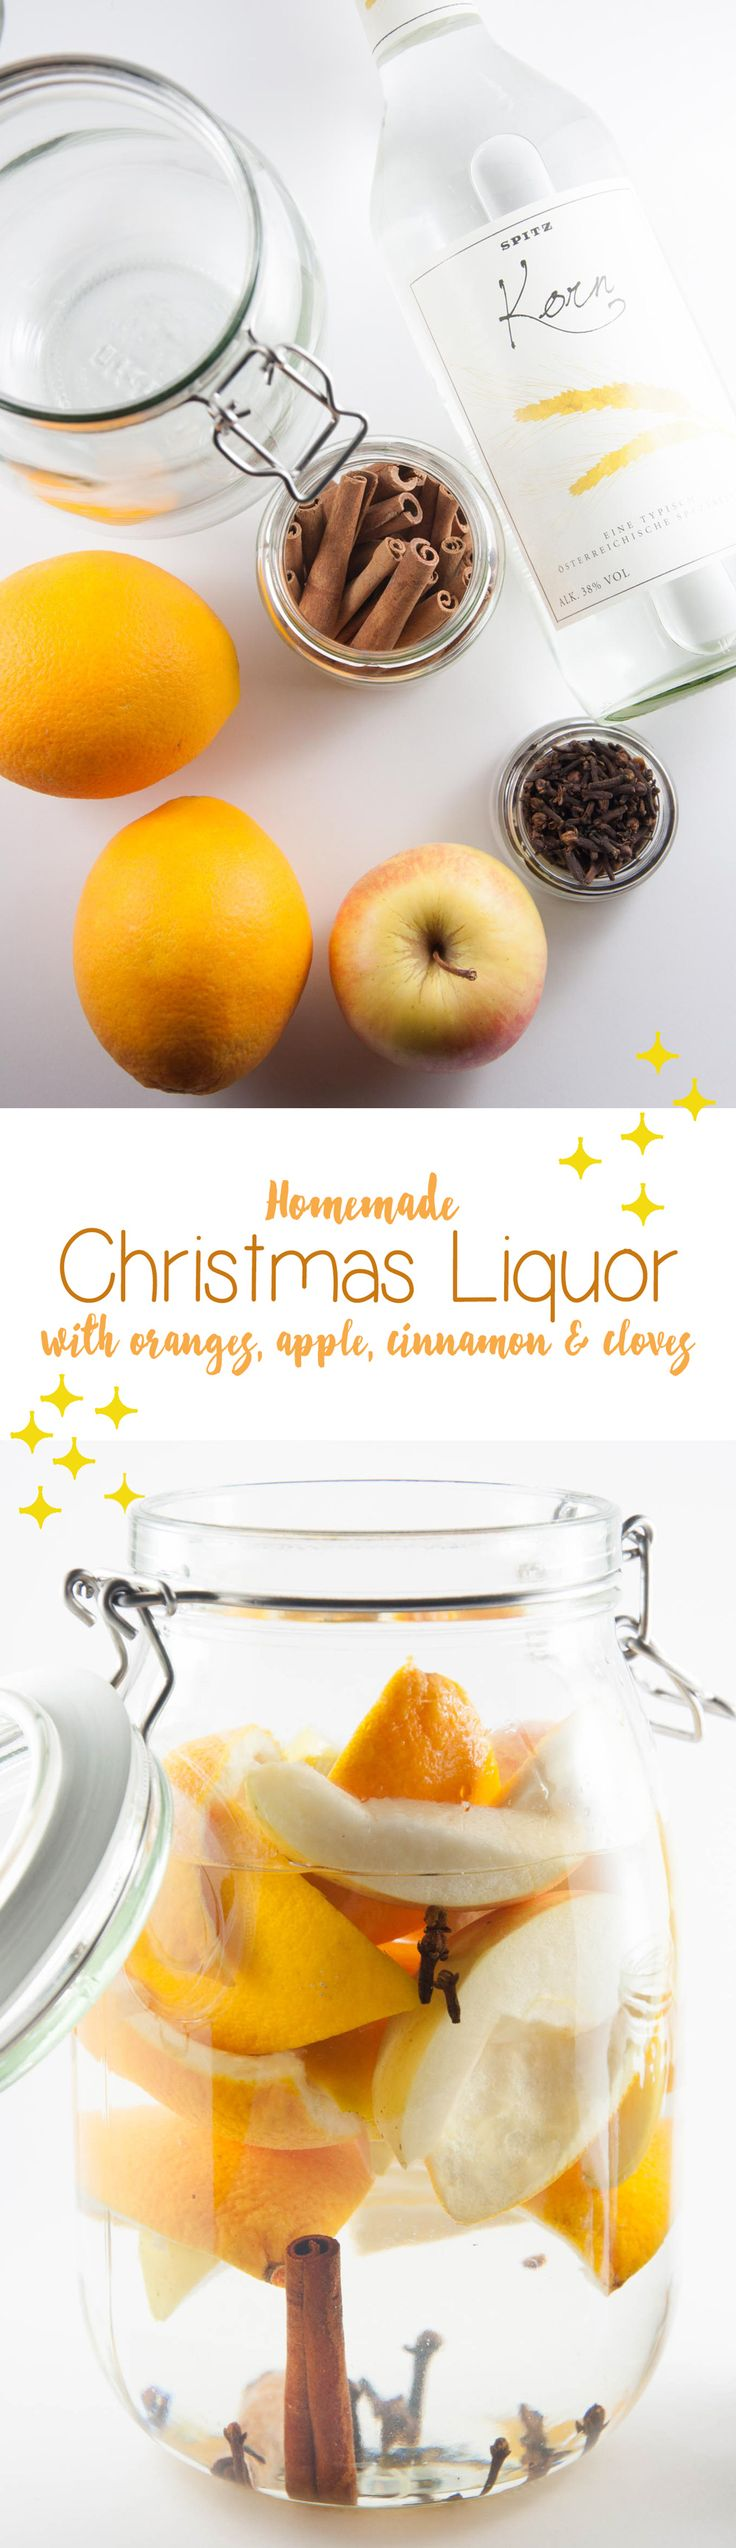 Make this homemade Christmas Liquor with apples, oranges, cinnamon and more! It's the perfect little gift for your relatives or co-workers.